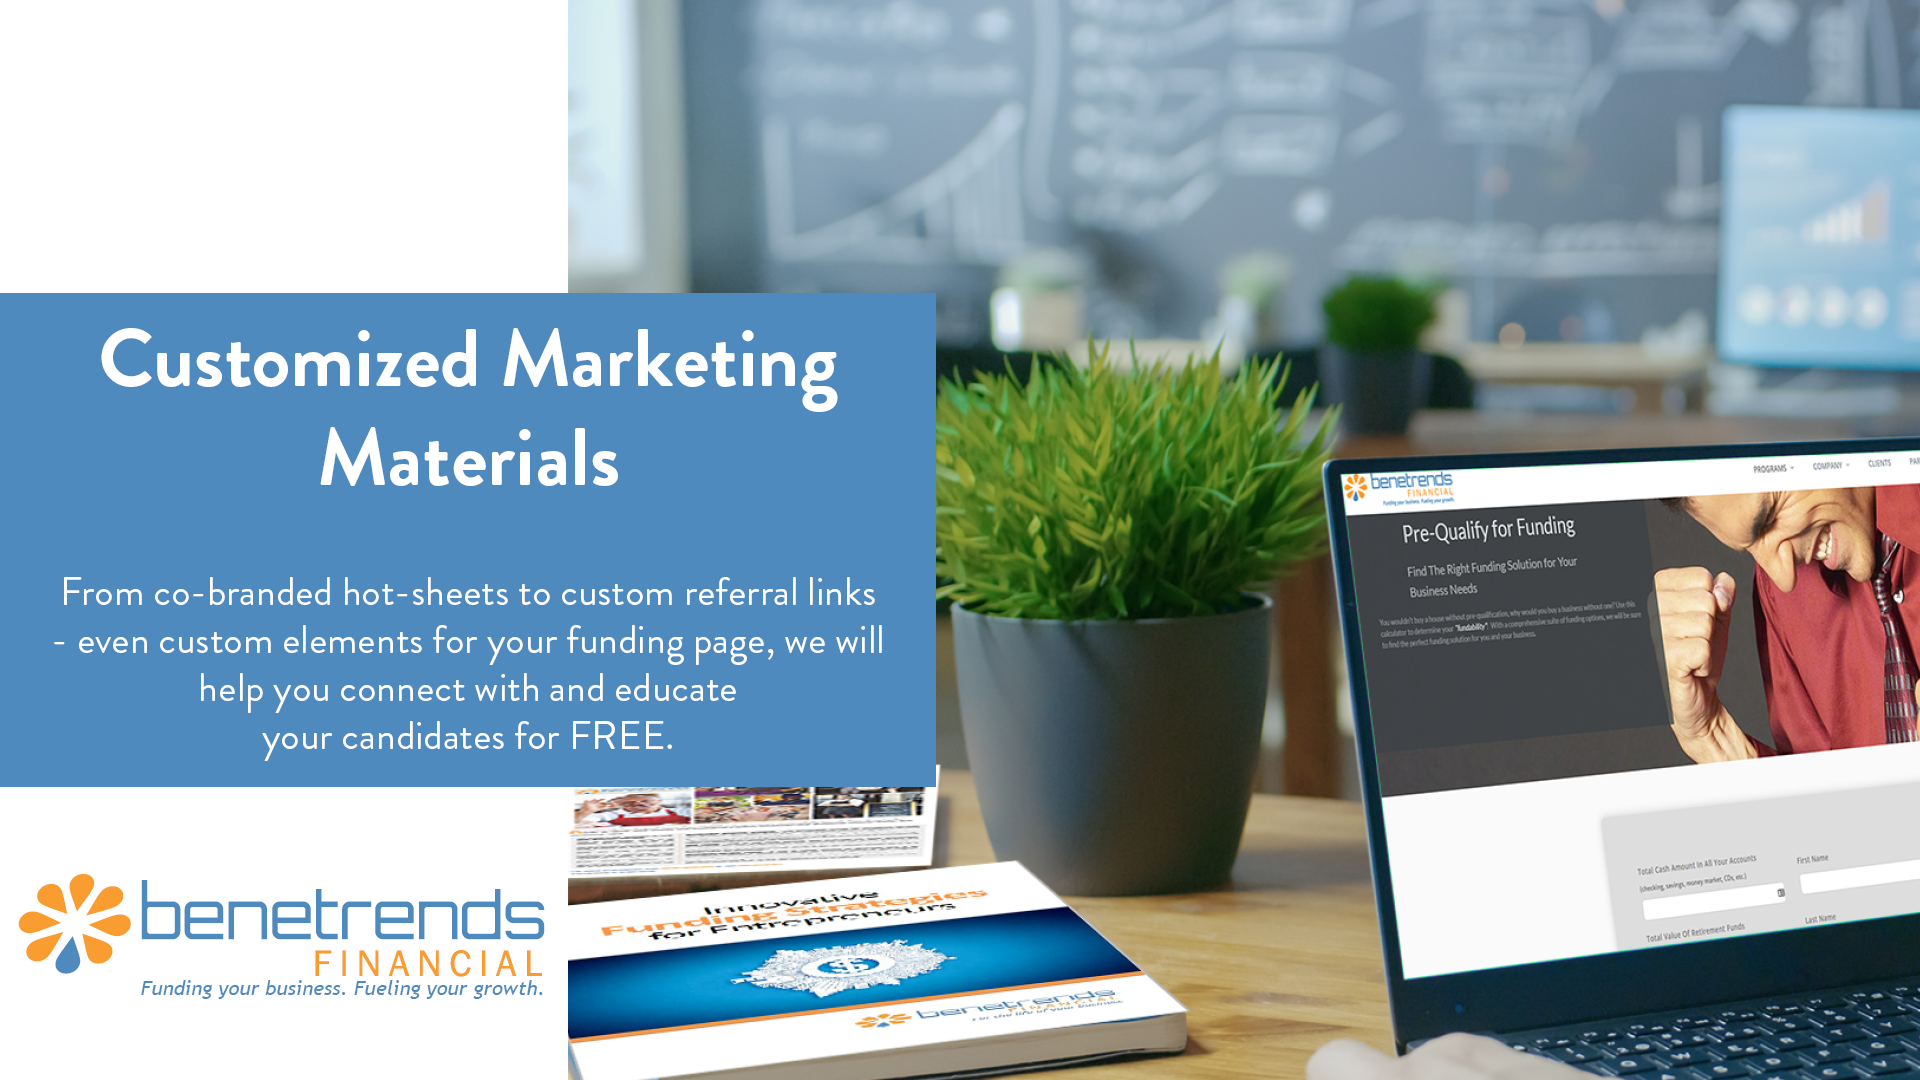 Benetrends Financial Customized Marketing Materials